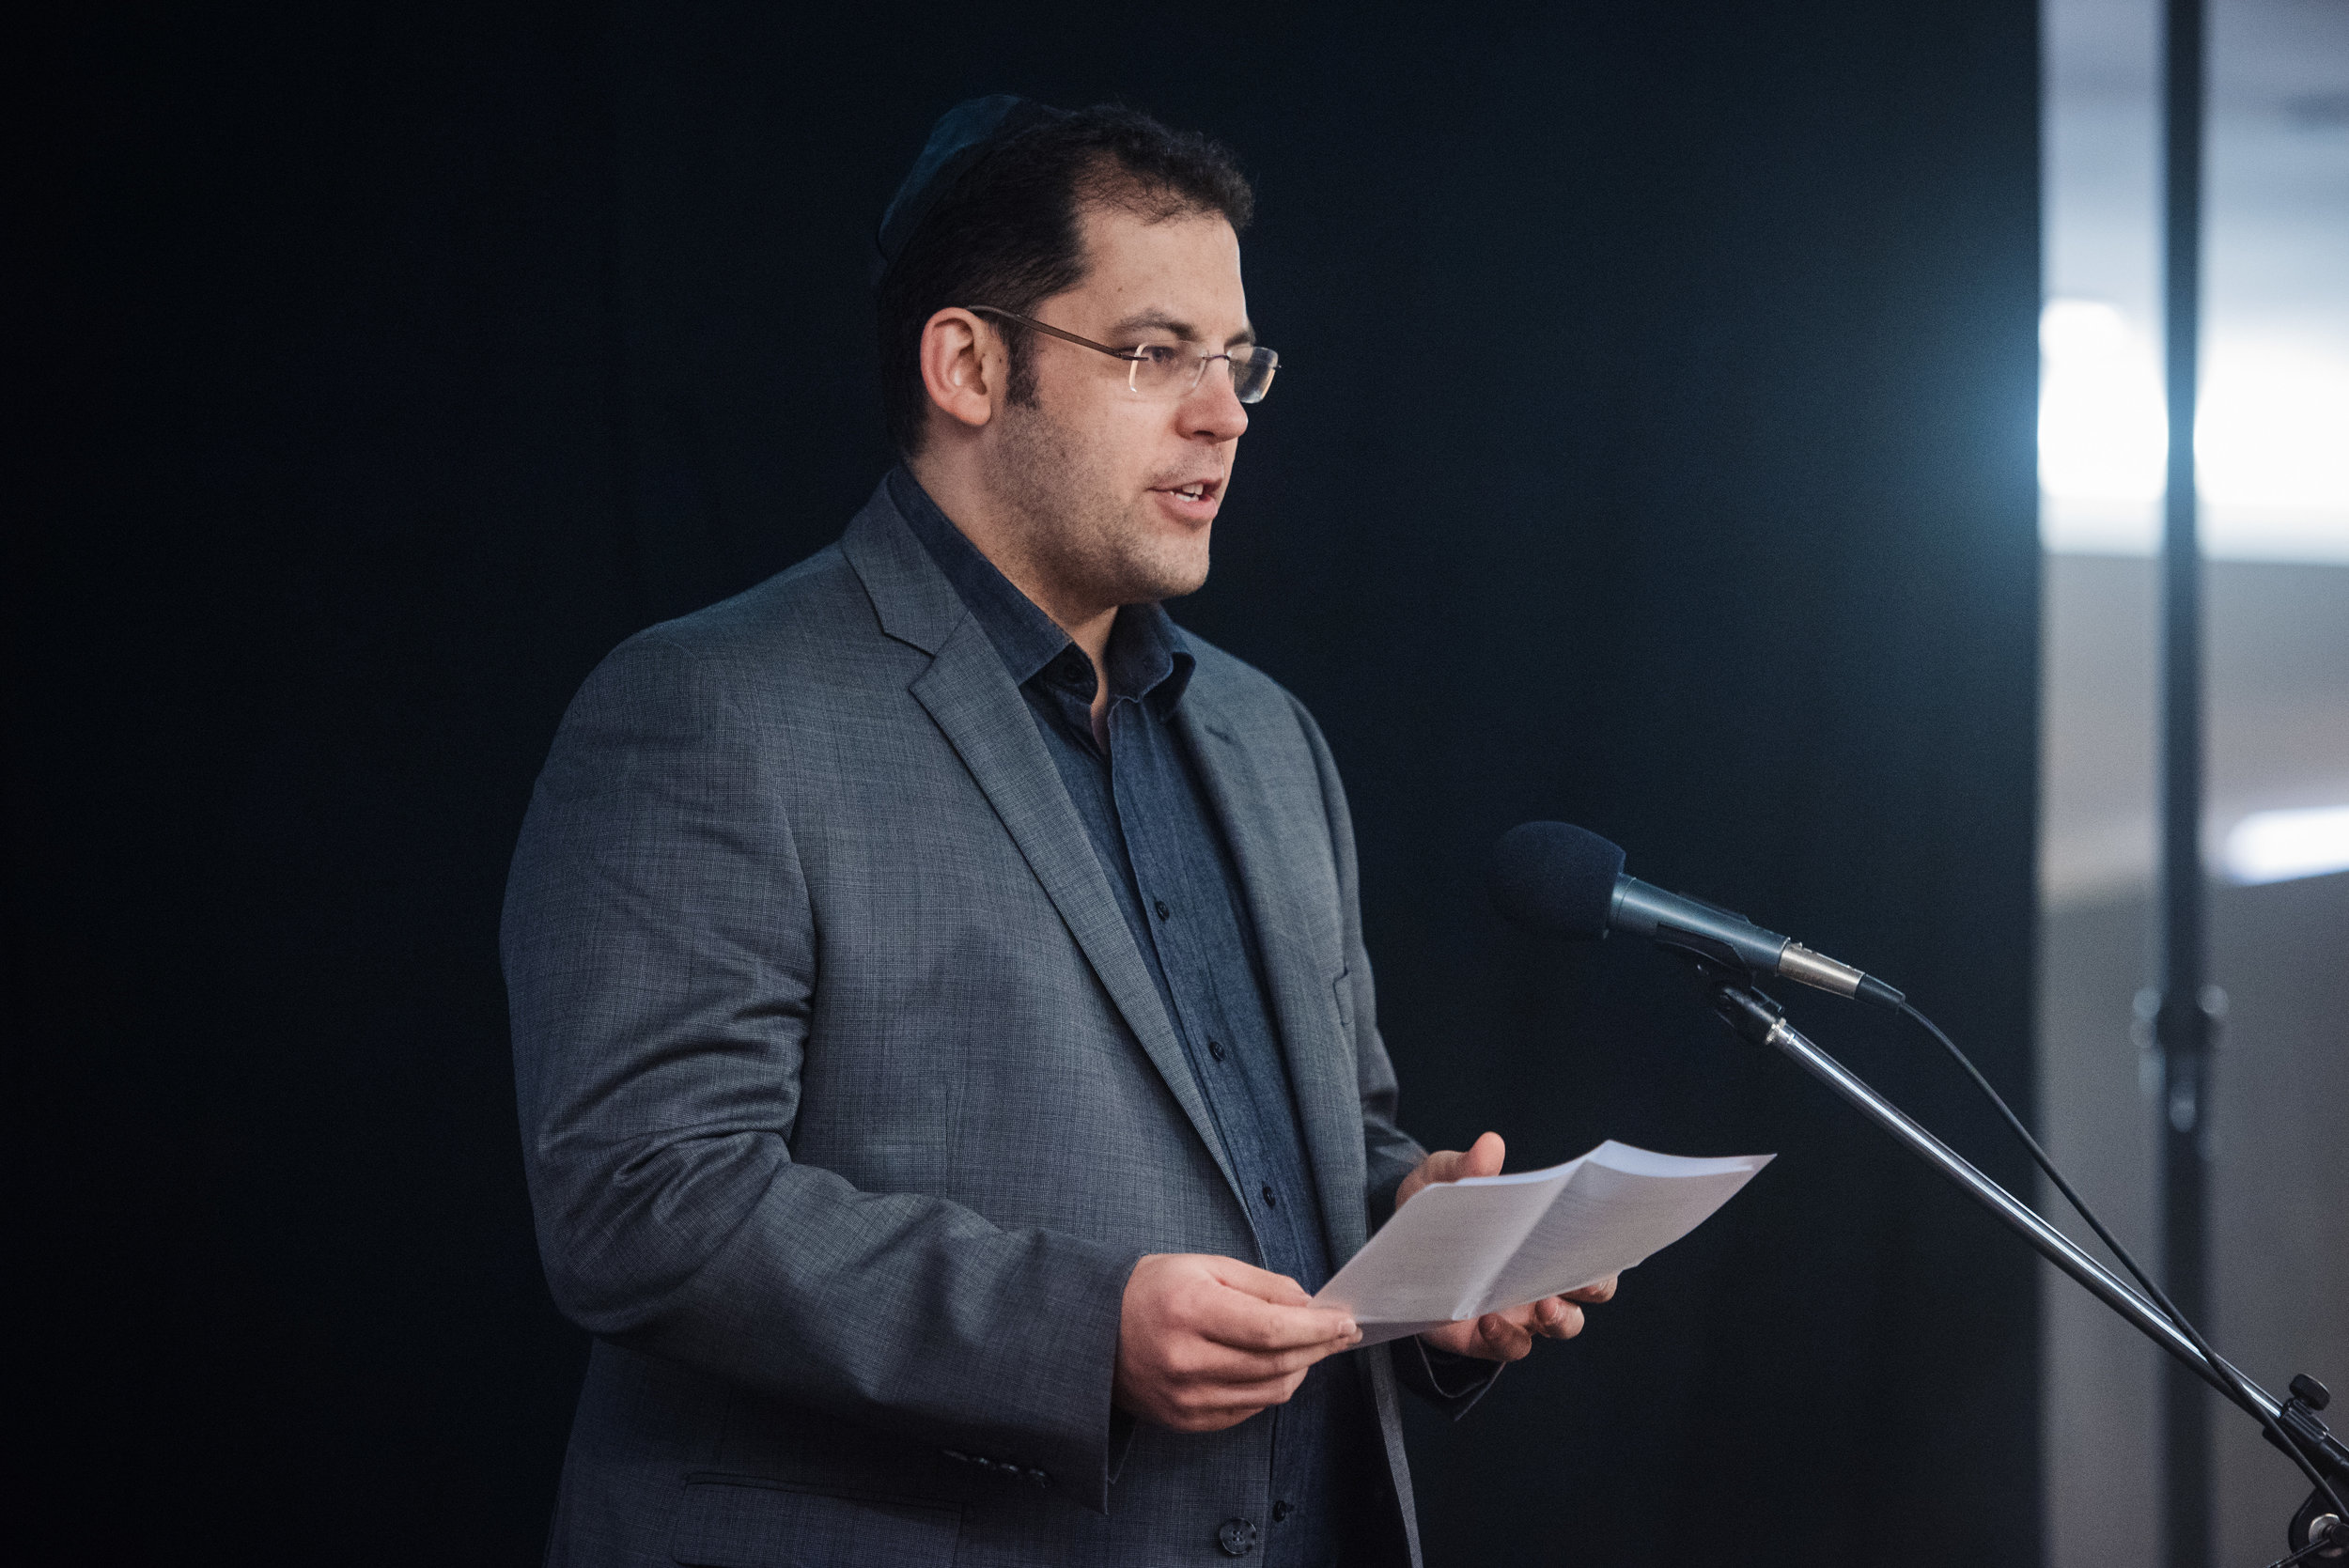 Dr David Cumin, speaking at the New Zealand launch event, 1 August 2018, Auckland Hebrew Congregation